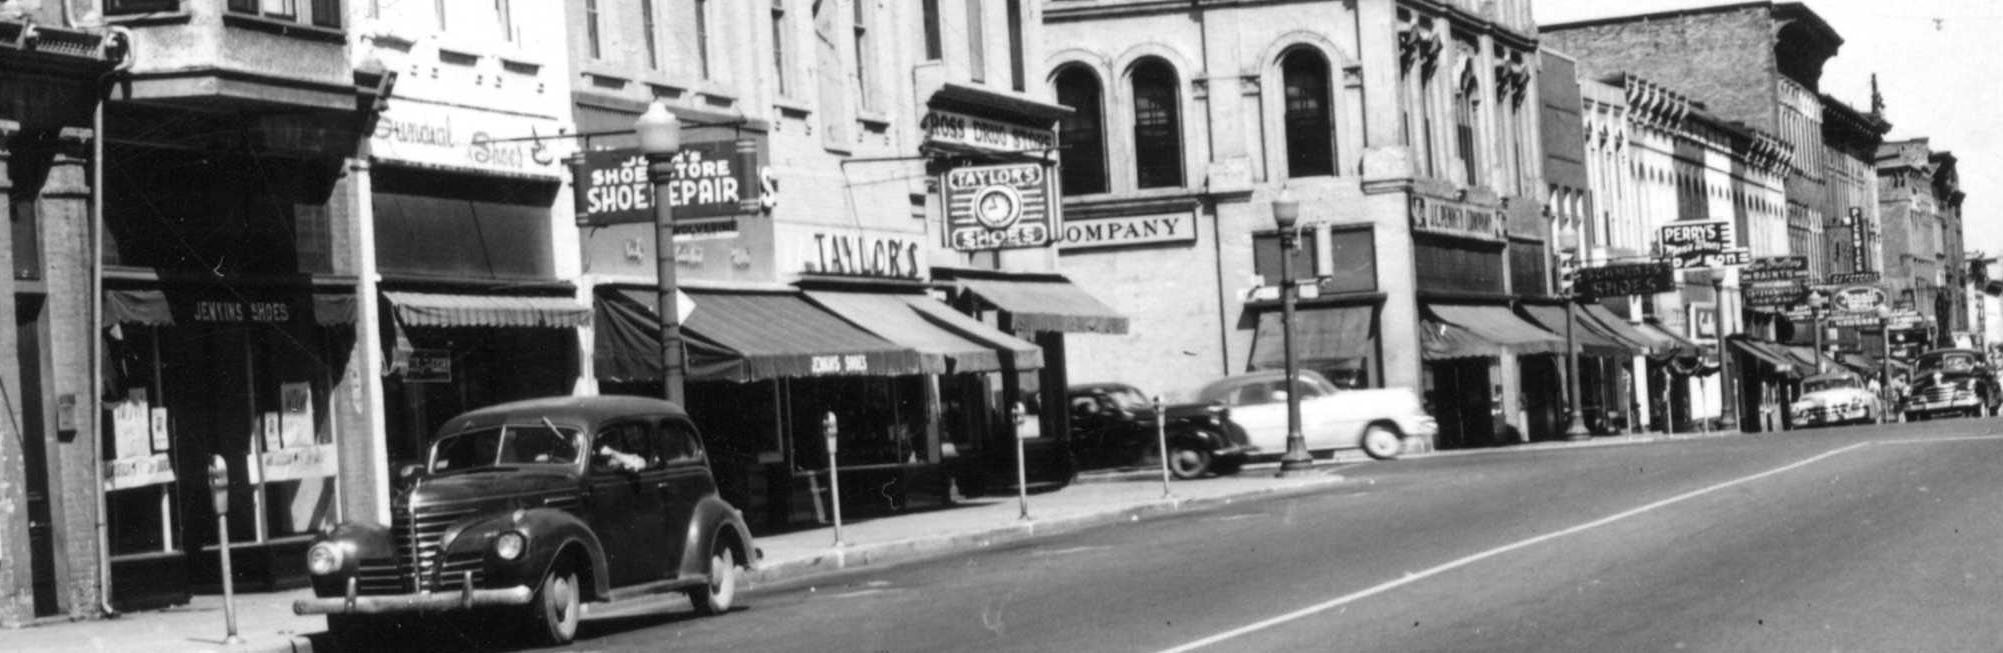 Here are several shoe stores along the street ,J.C. Penny's and Perrys Clothing store.